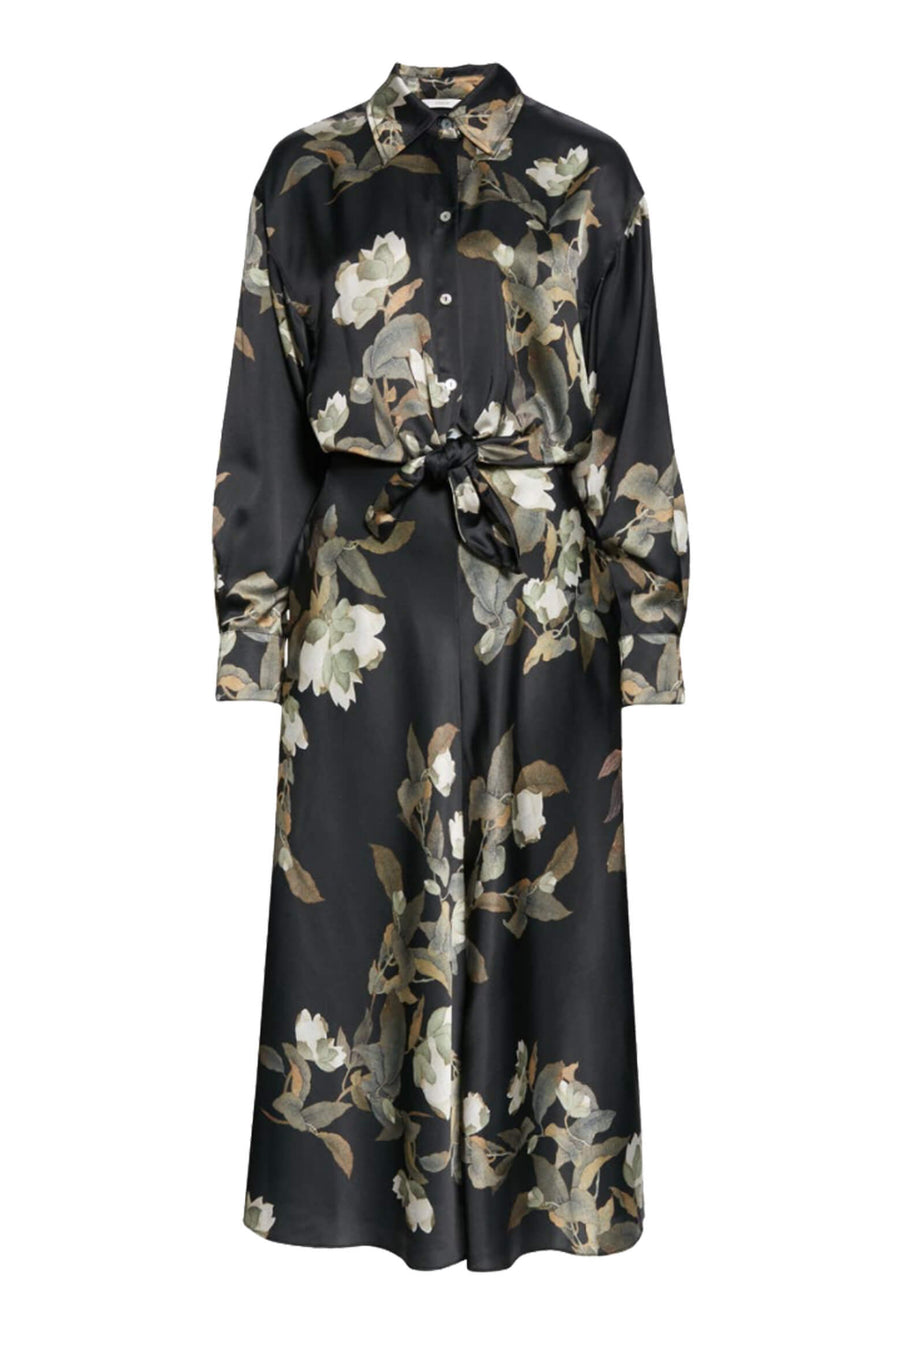 Vince Lisianthus Tie Front Shirt Dress in Black from The New Trend